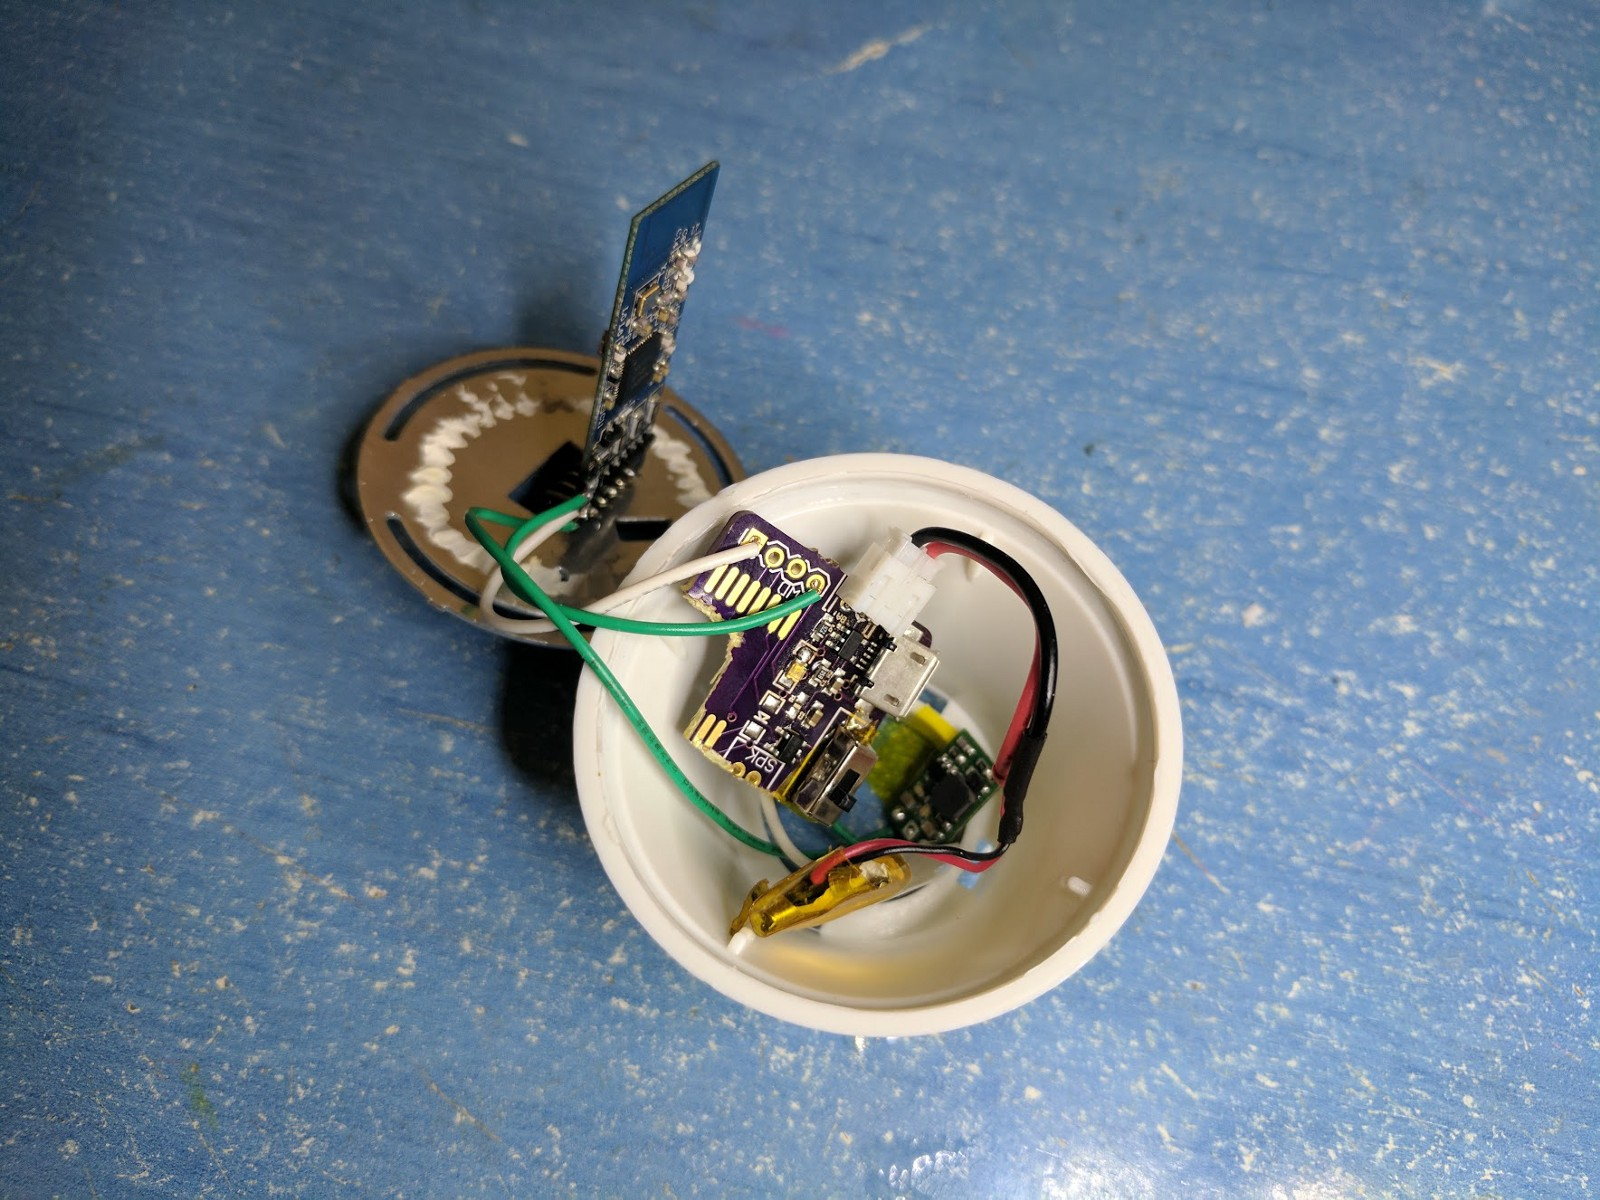 How To Make Your Very Own Wireless Extra Magic Smart Bulb Light A Small Lightbulb With Just One Battery And Wire Put Everything Together